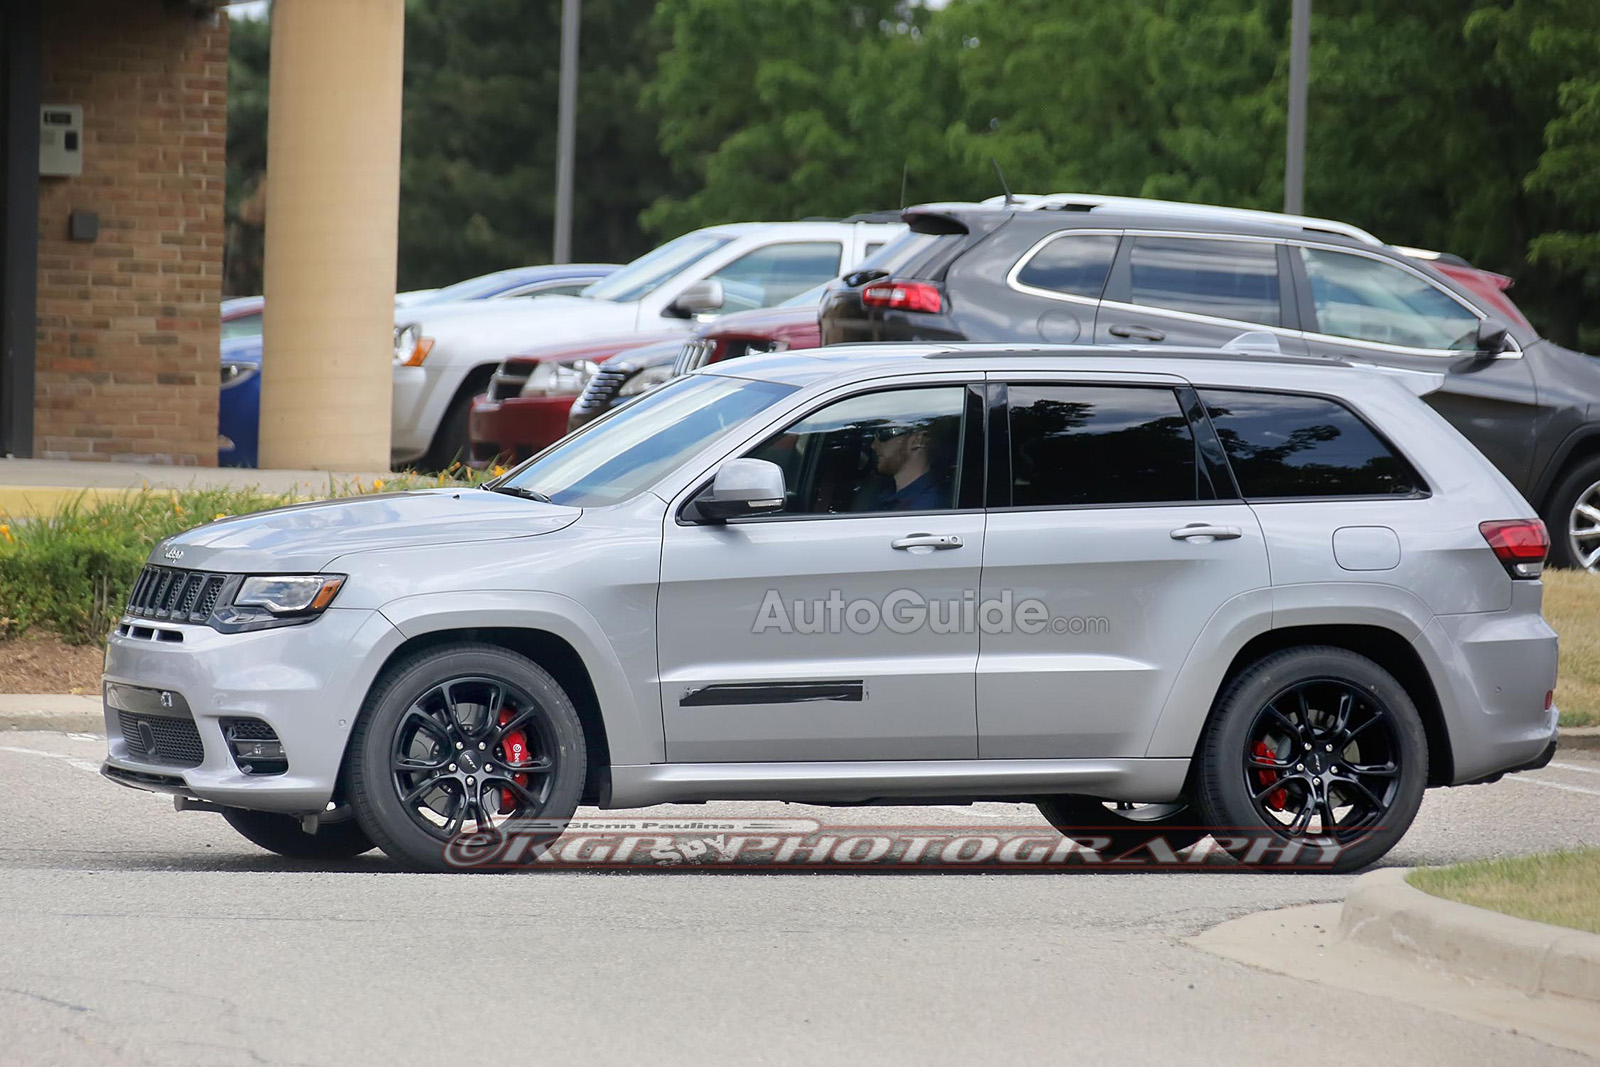 hellcat-powered jeep grand cherokee debuting april 2017